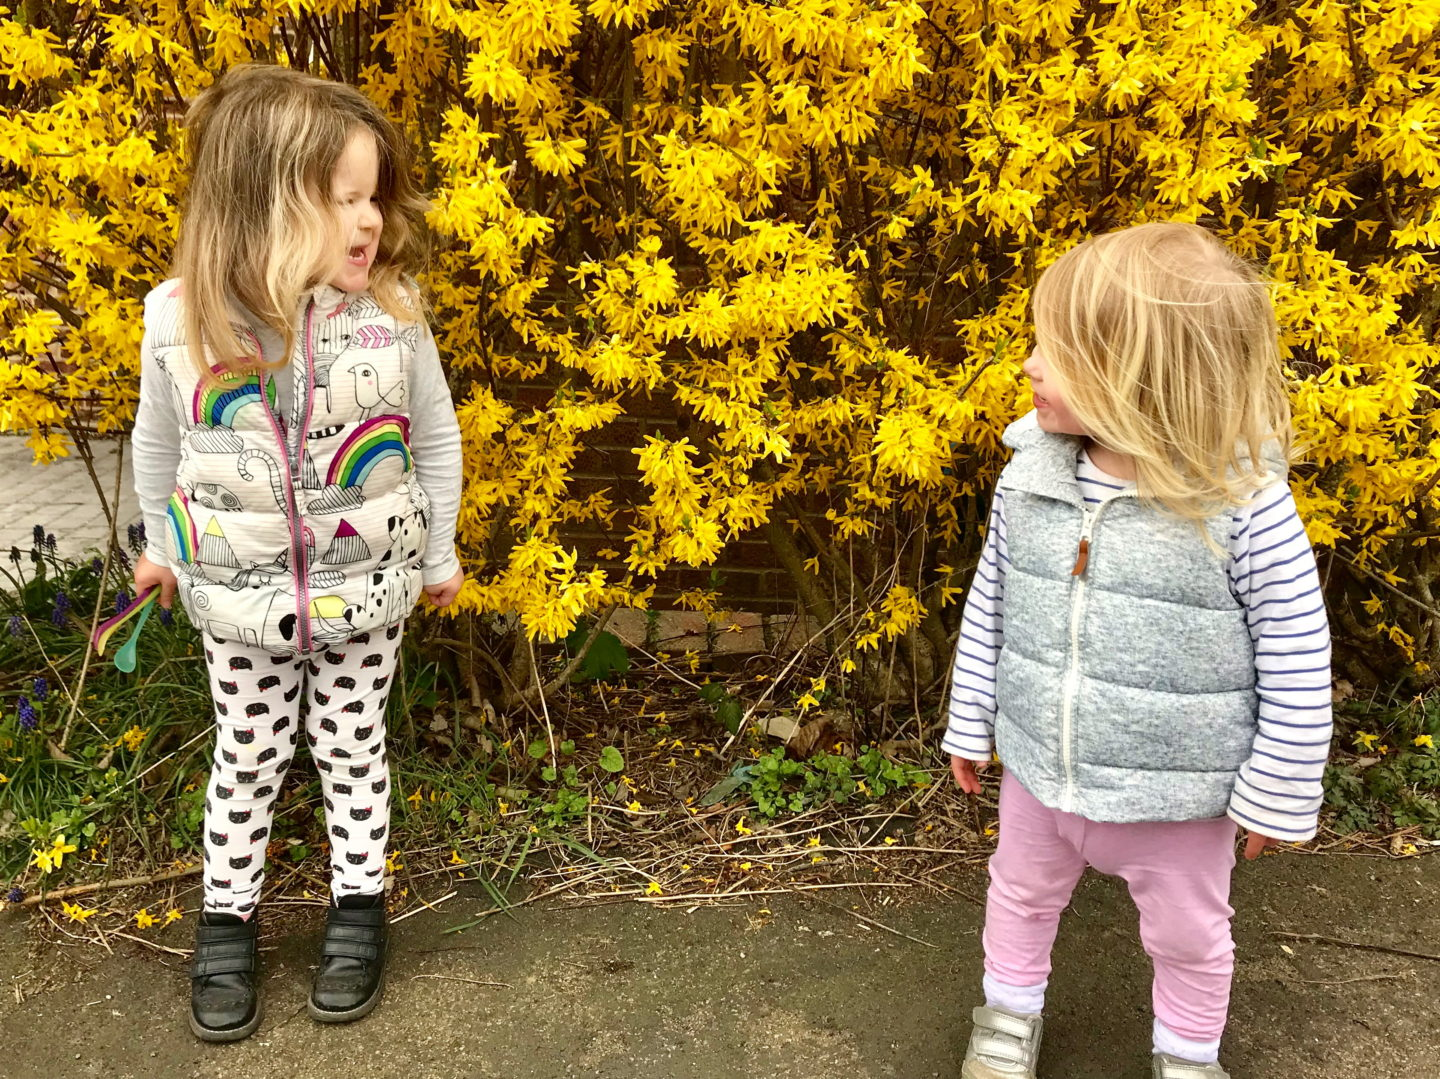 Two sisters standing in front of a yellow flowering bush, looking at one another, giggling